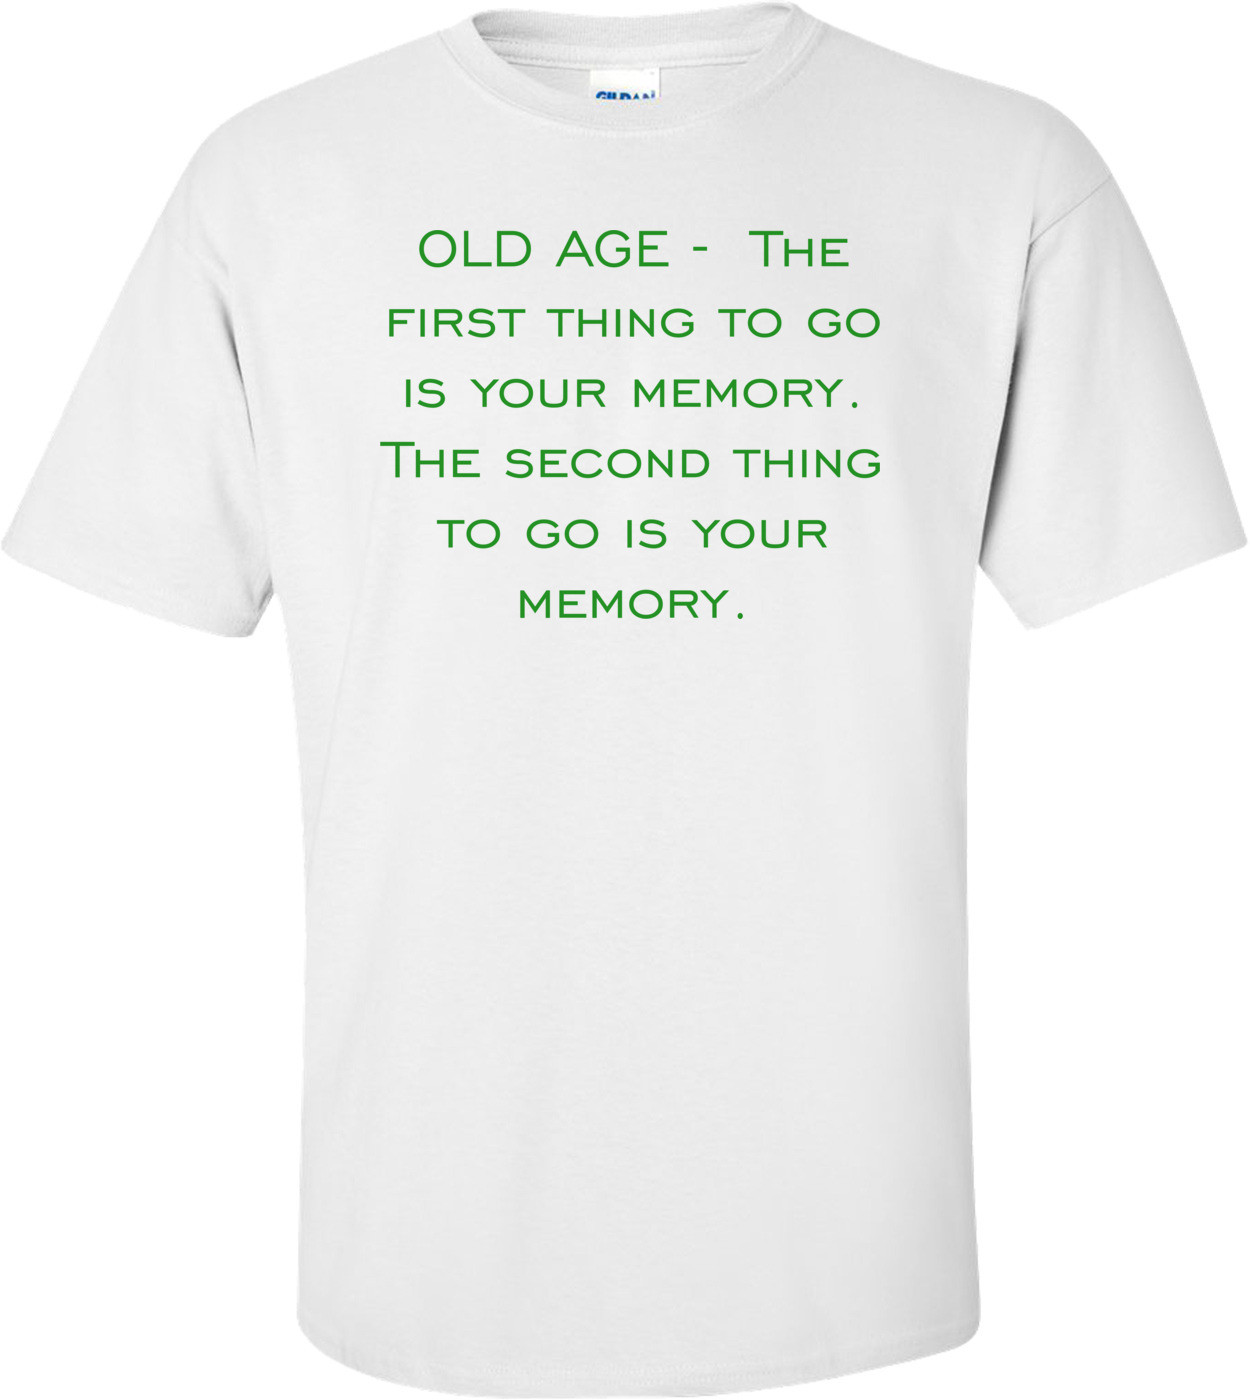 OLD AGE -  The first thing to go is your memory. The second thing to go is your memory. Shirt